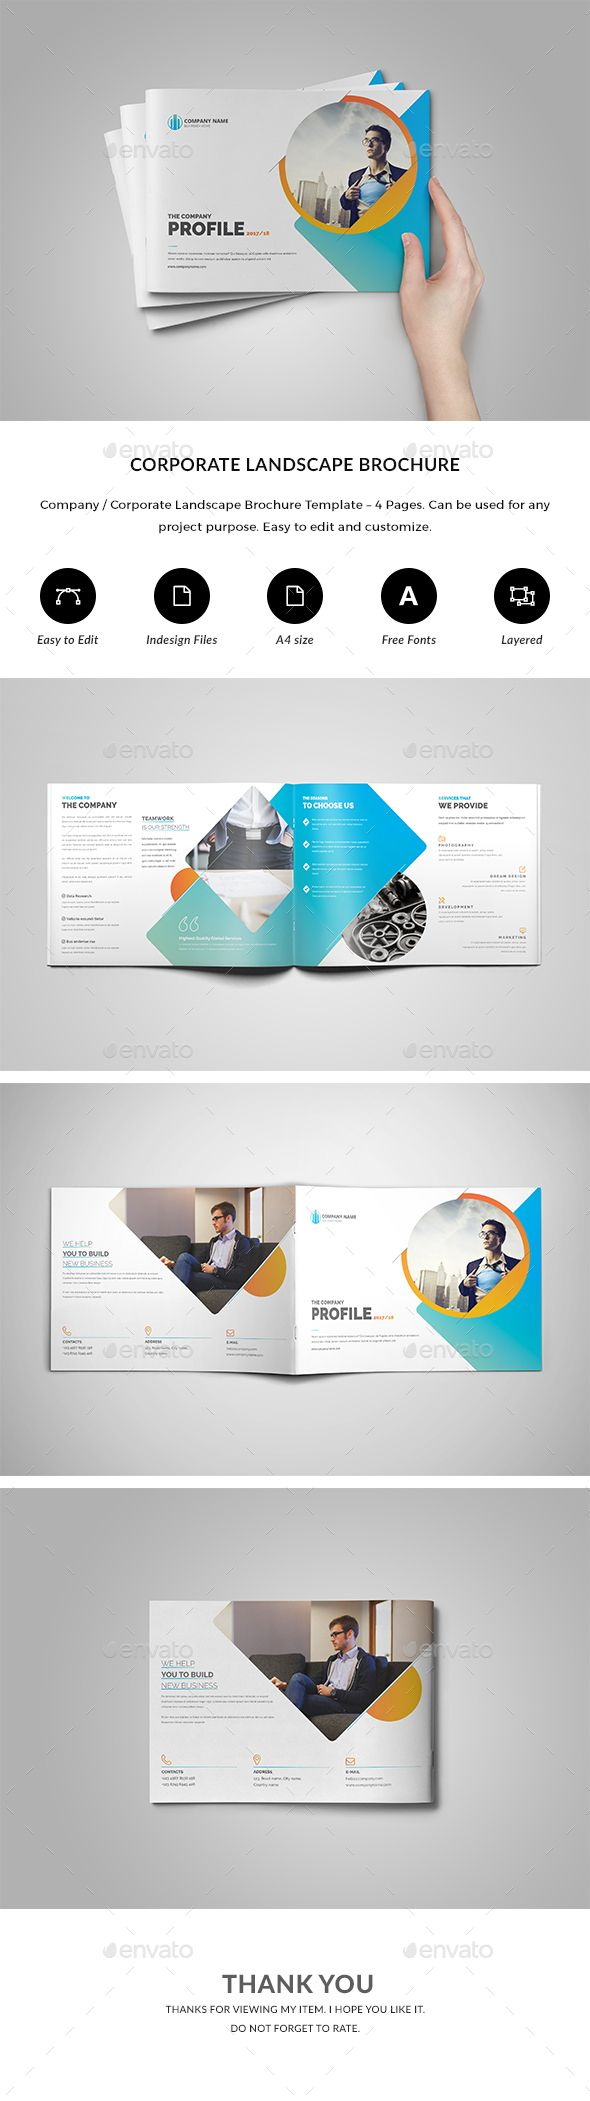 companycorporate landscape brochure 4 pages brochures print templates